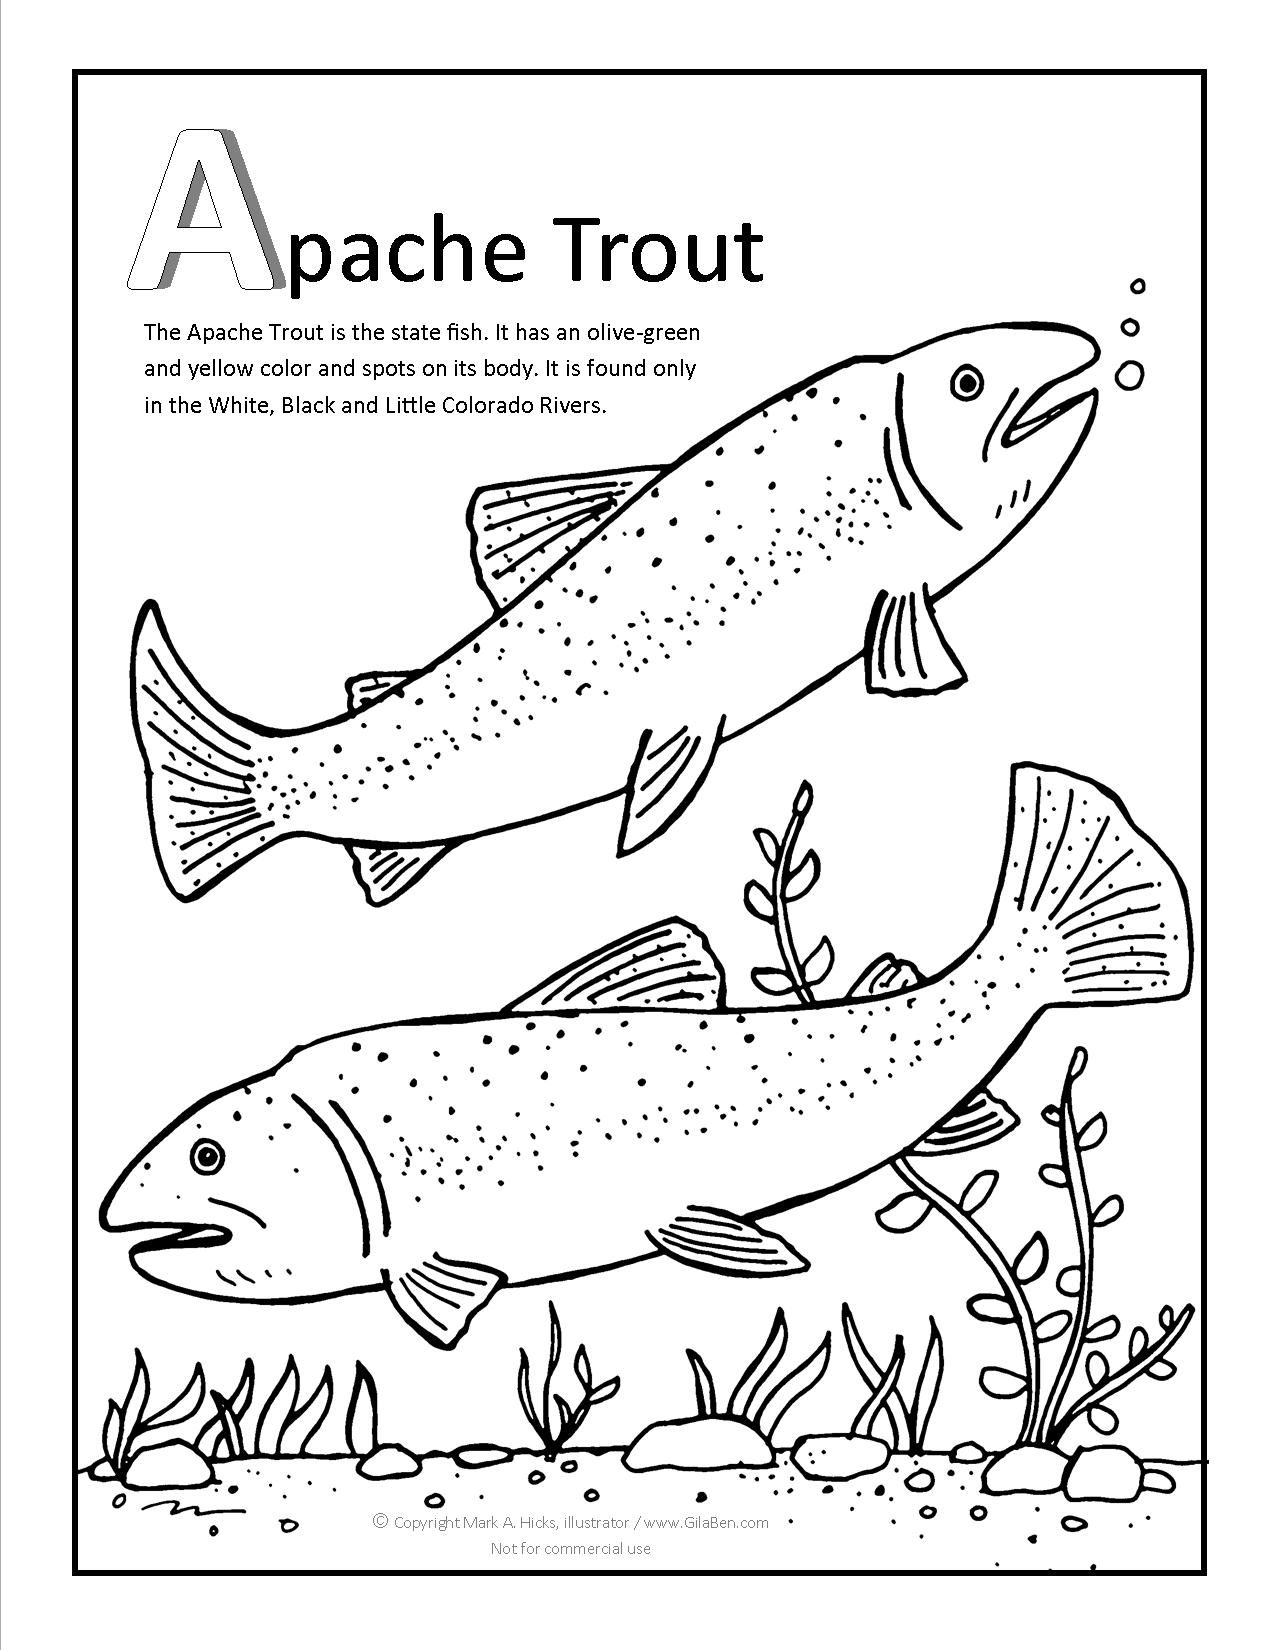 Apache Trout Coloring page at GilaBen.com | Arizona Coloring Pages ...